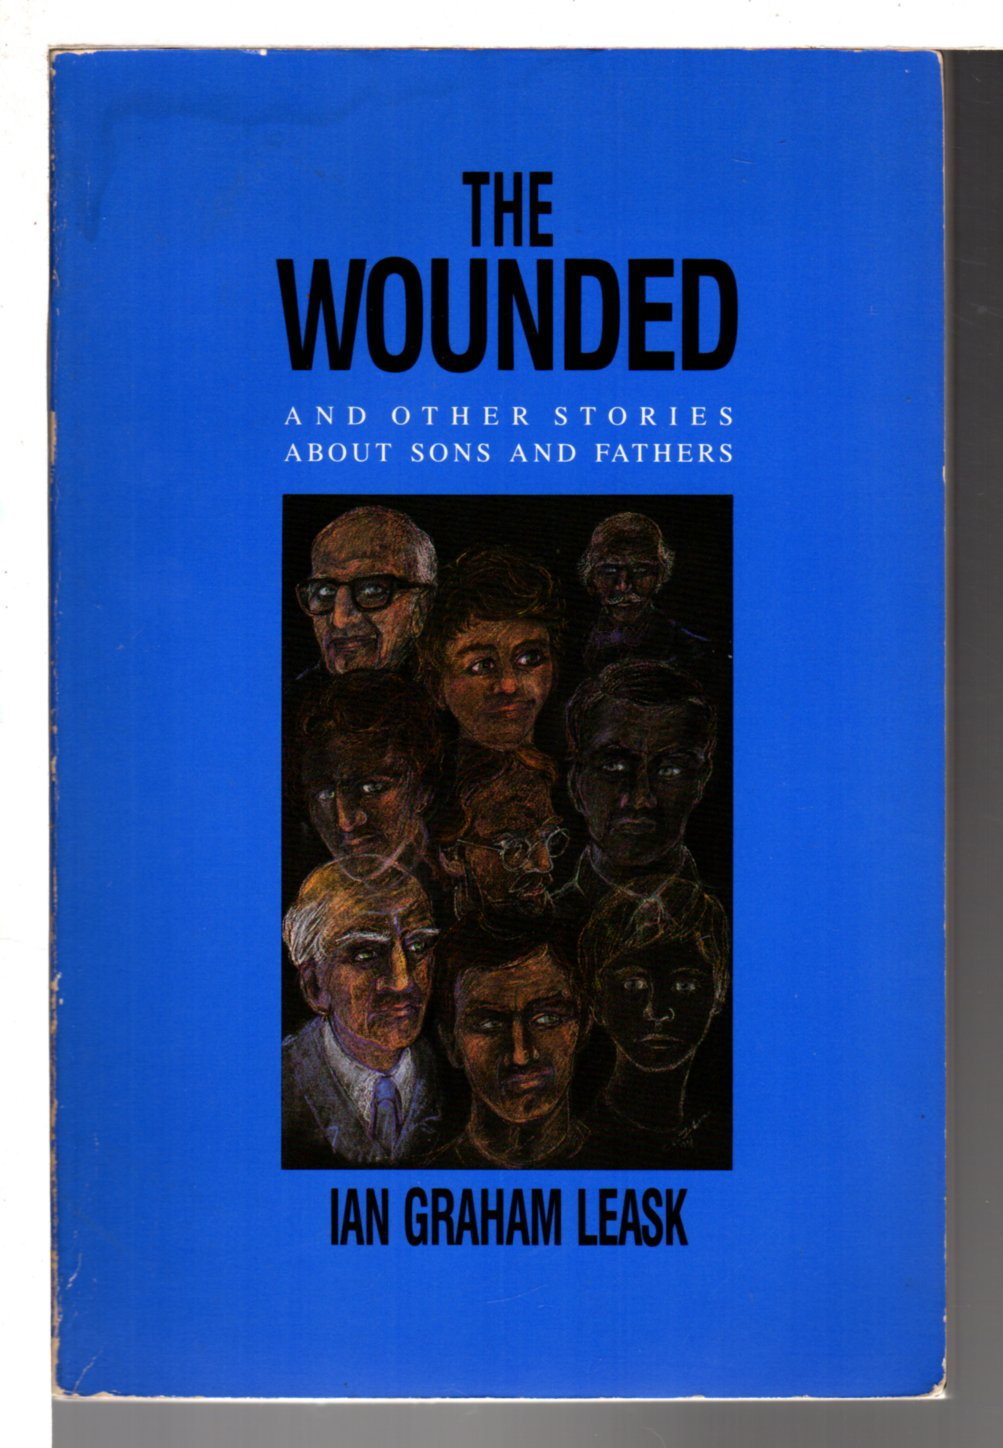 LEASK, IAN GRAHAM. - THE WOUNDED: and Other Stories About Sons and Fathers.